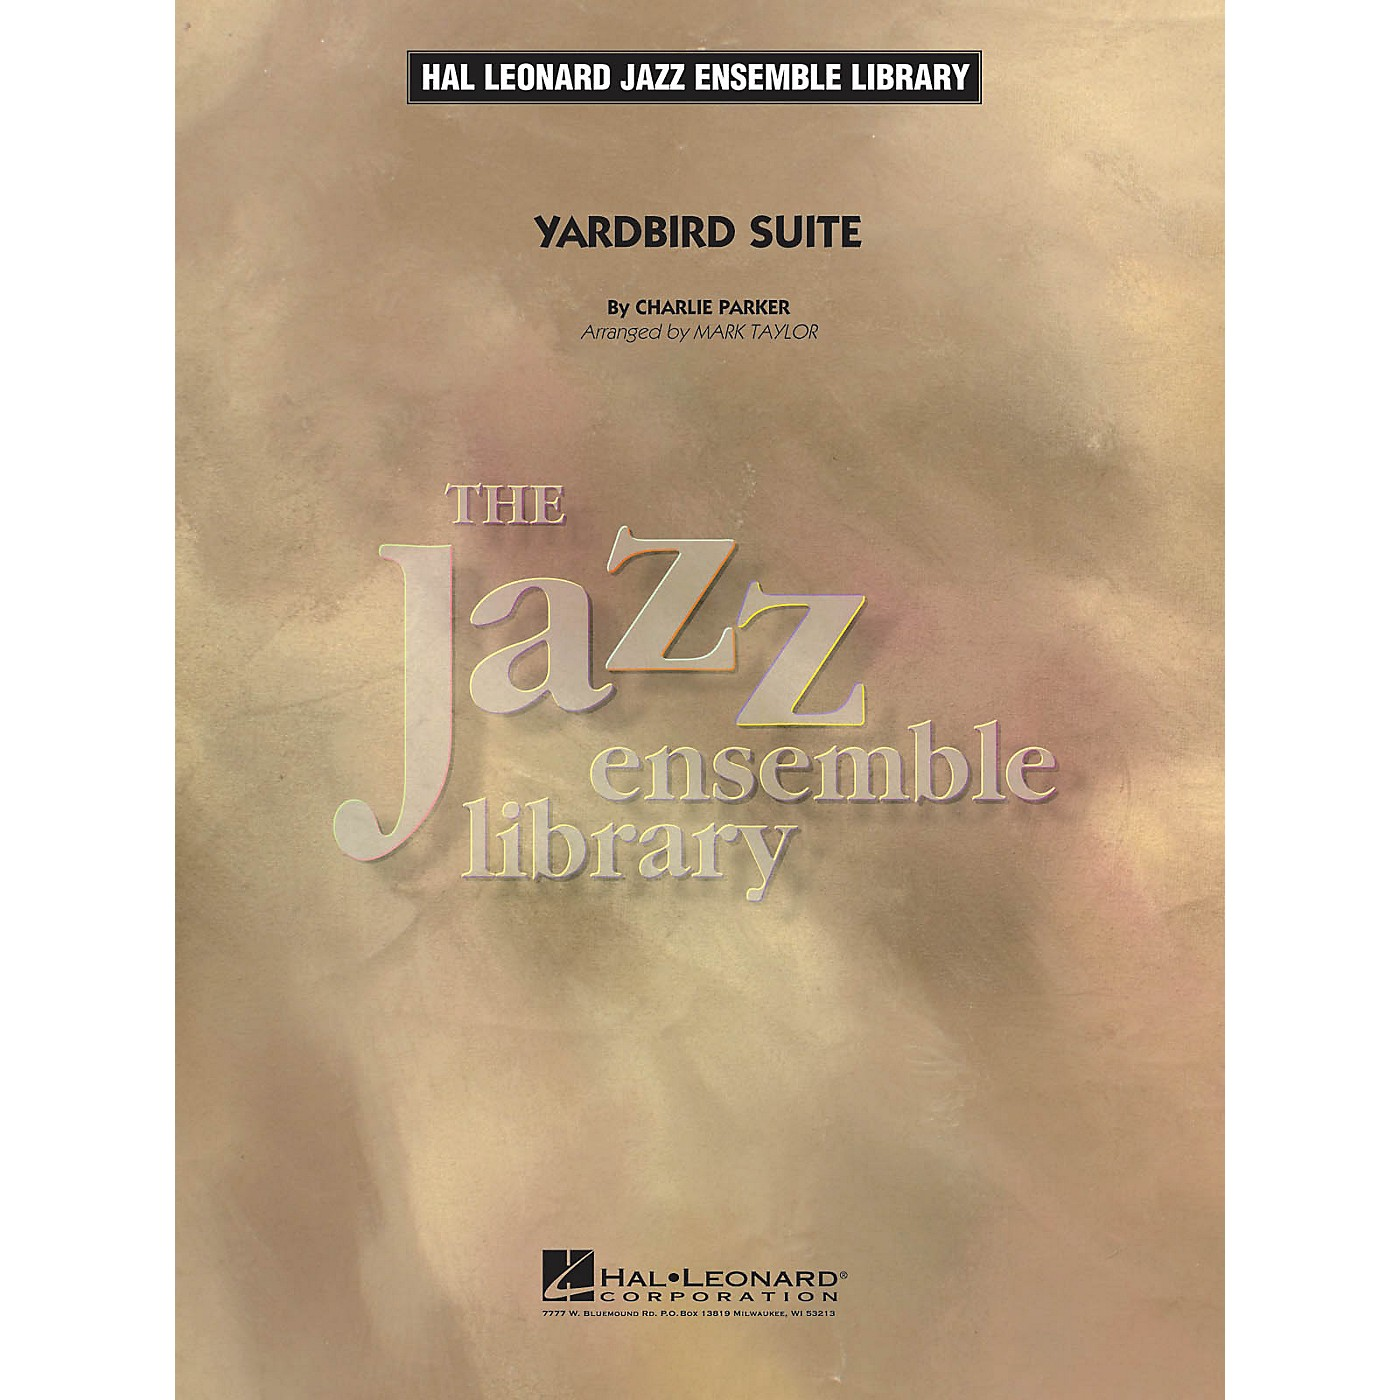 Hal Leonard Yardbird Suite Jazz Band Level 4 by Charlie Parker Arranged by Mark Taylor thumbnail